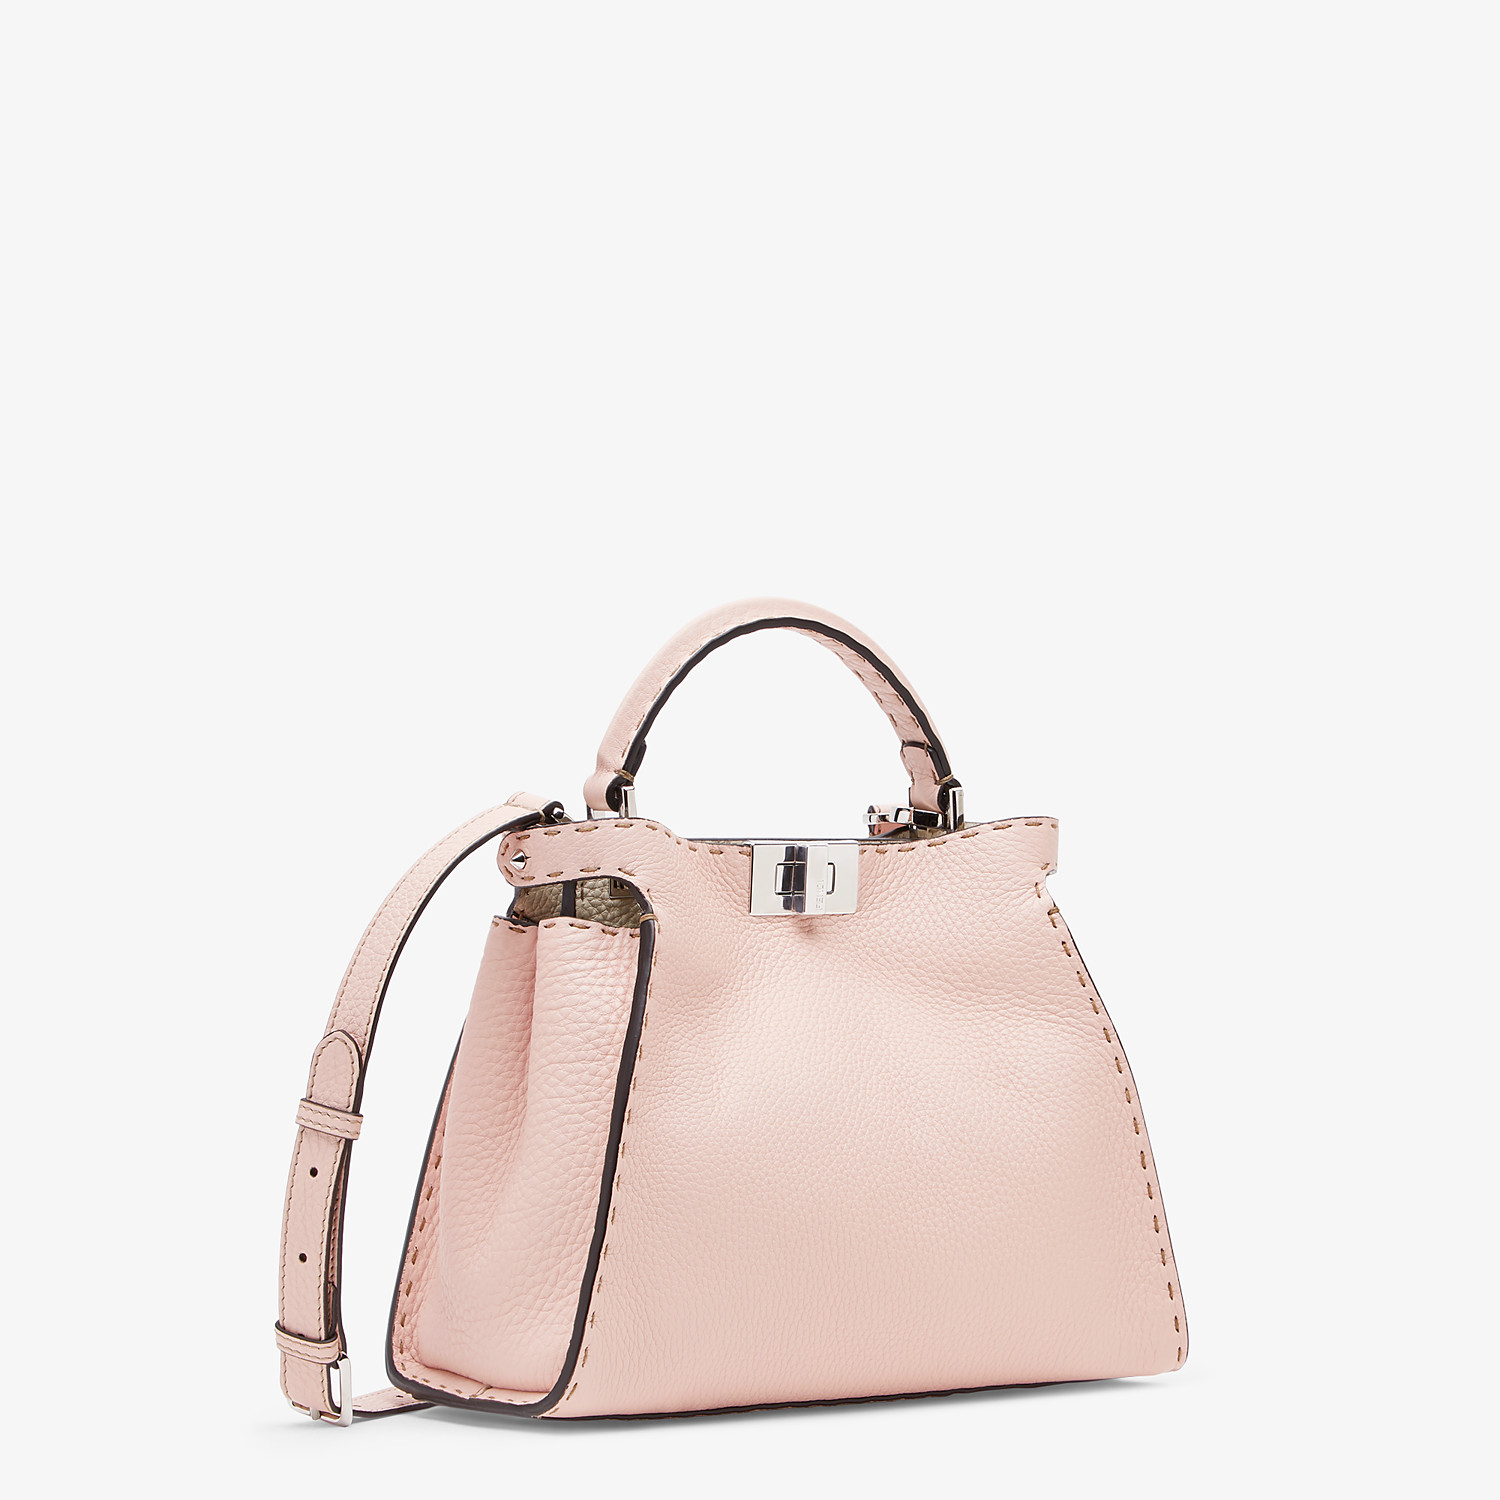 FENDI PEEKABOO ICONIC ESSENTIALLY - Pink leather bag - view 2 detail